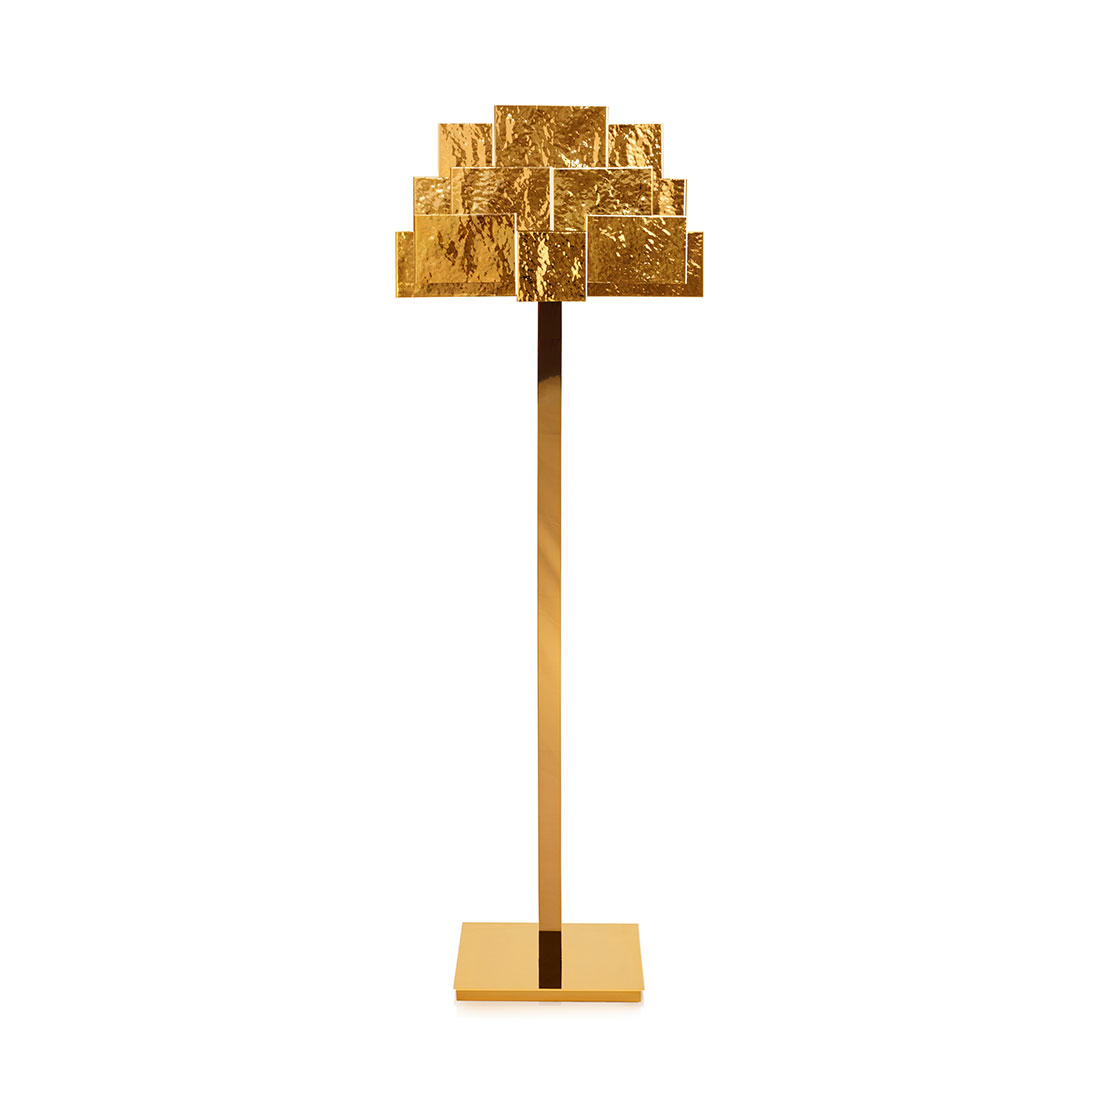 Inspiring Trees floor lamp InsidherLand brass lighting